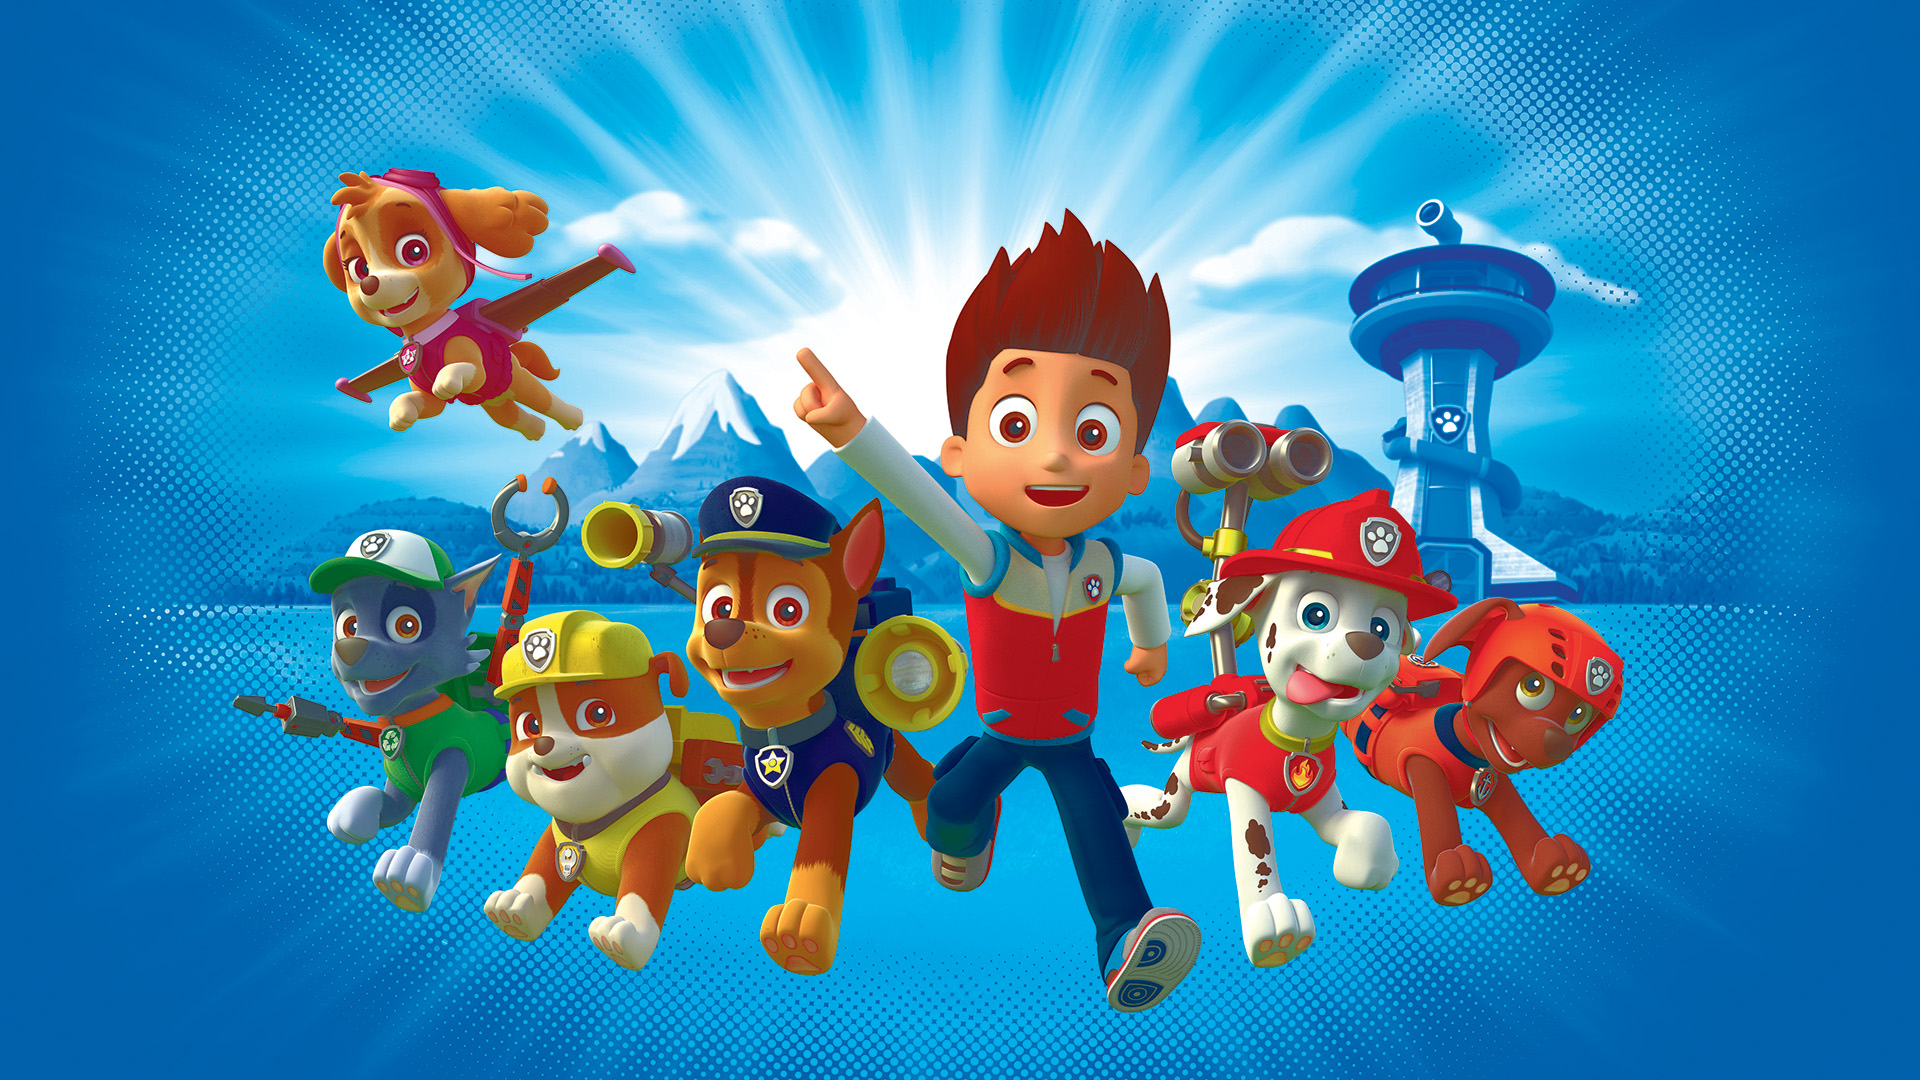 Paw Patrol HD Wallpaper | Background Image | 1920x1080 | ID:807471 - Wallpaper Abyss